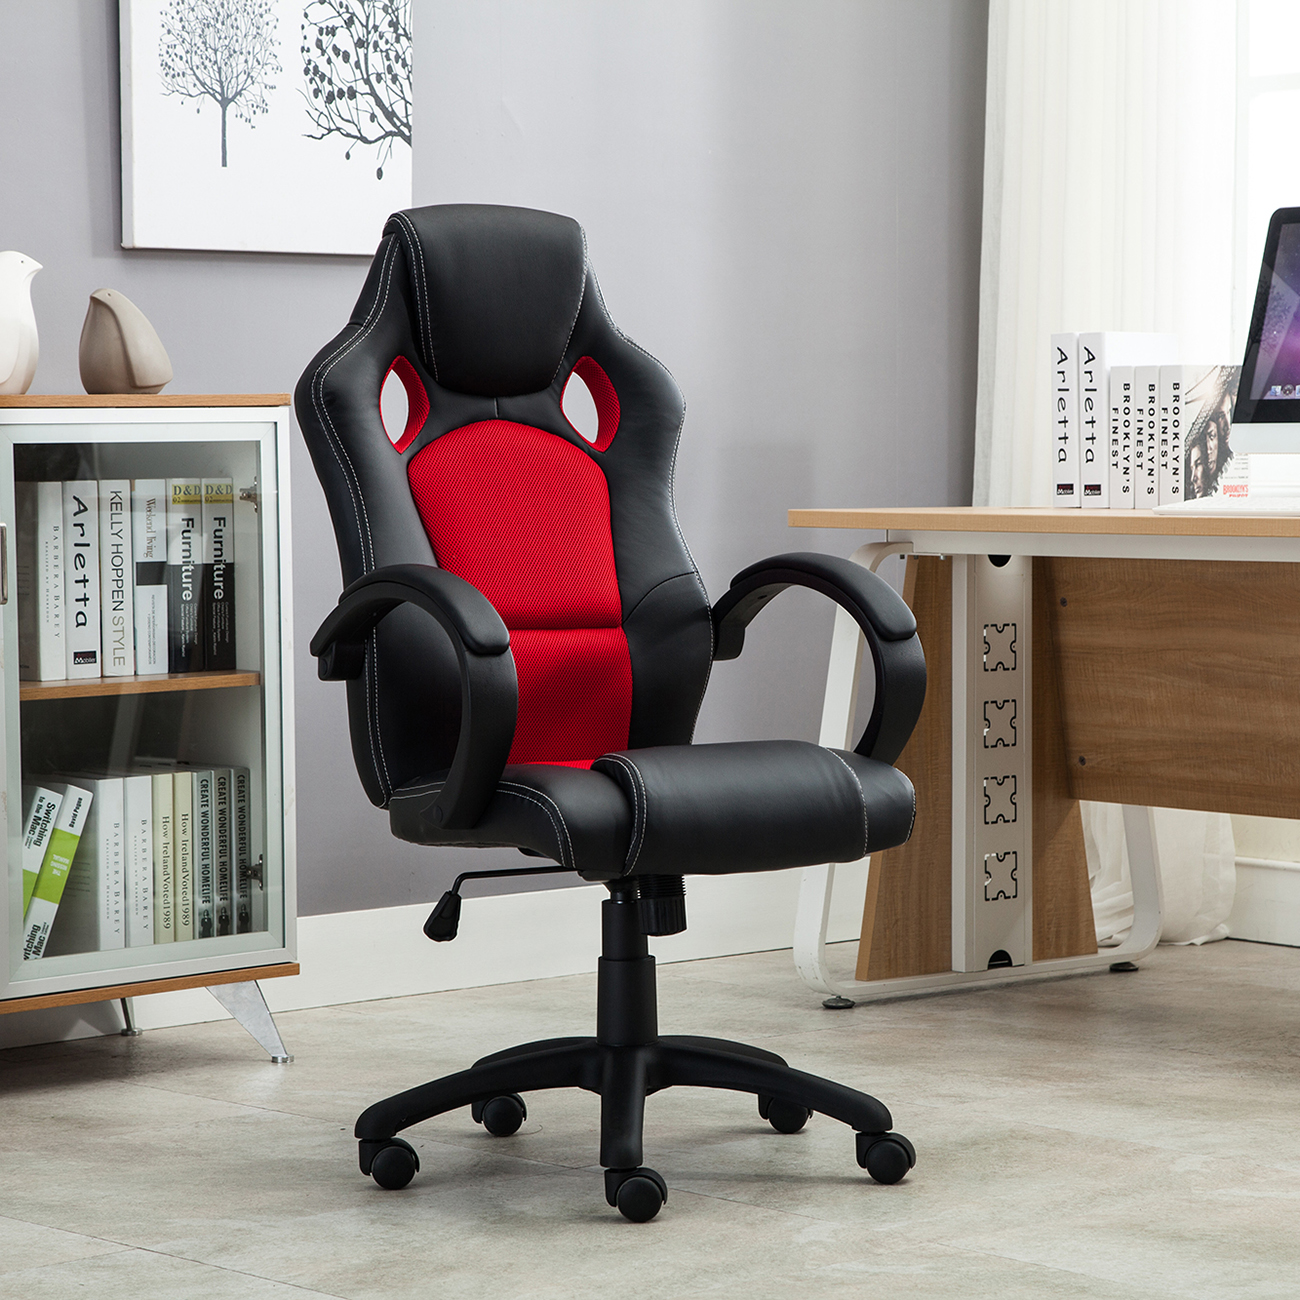 lofty desk executive leather decoration bucket office design chair style racing seat beautiful cryomatsorg sporty car pu new